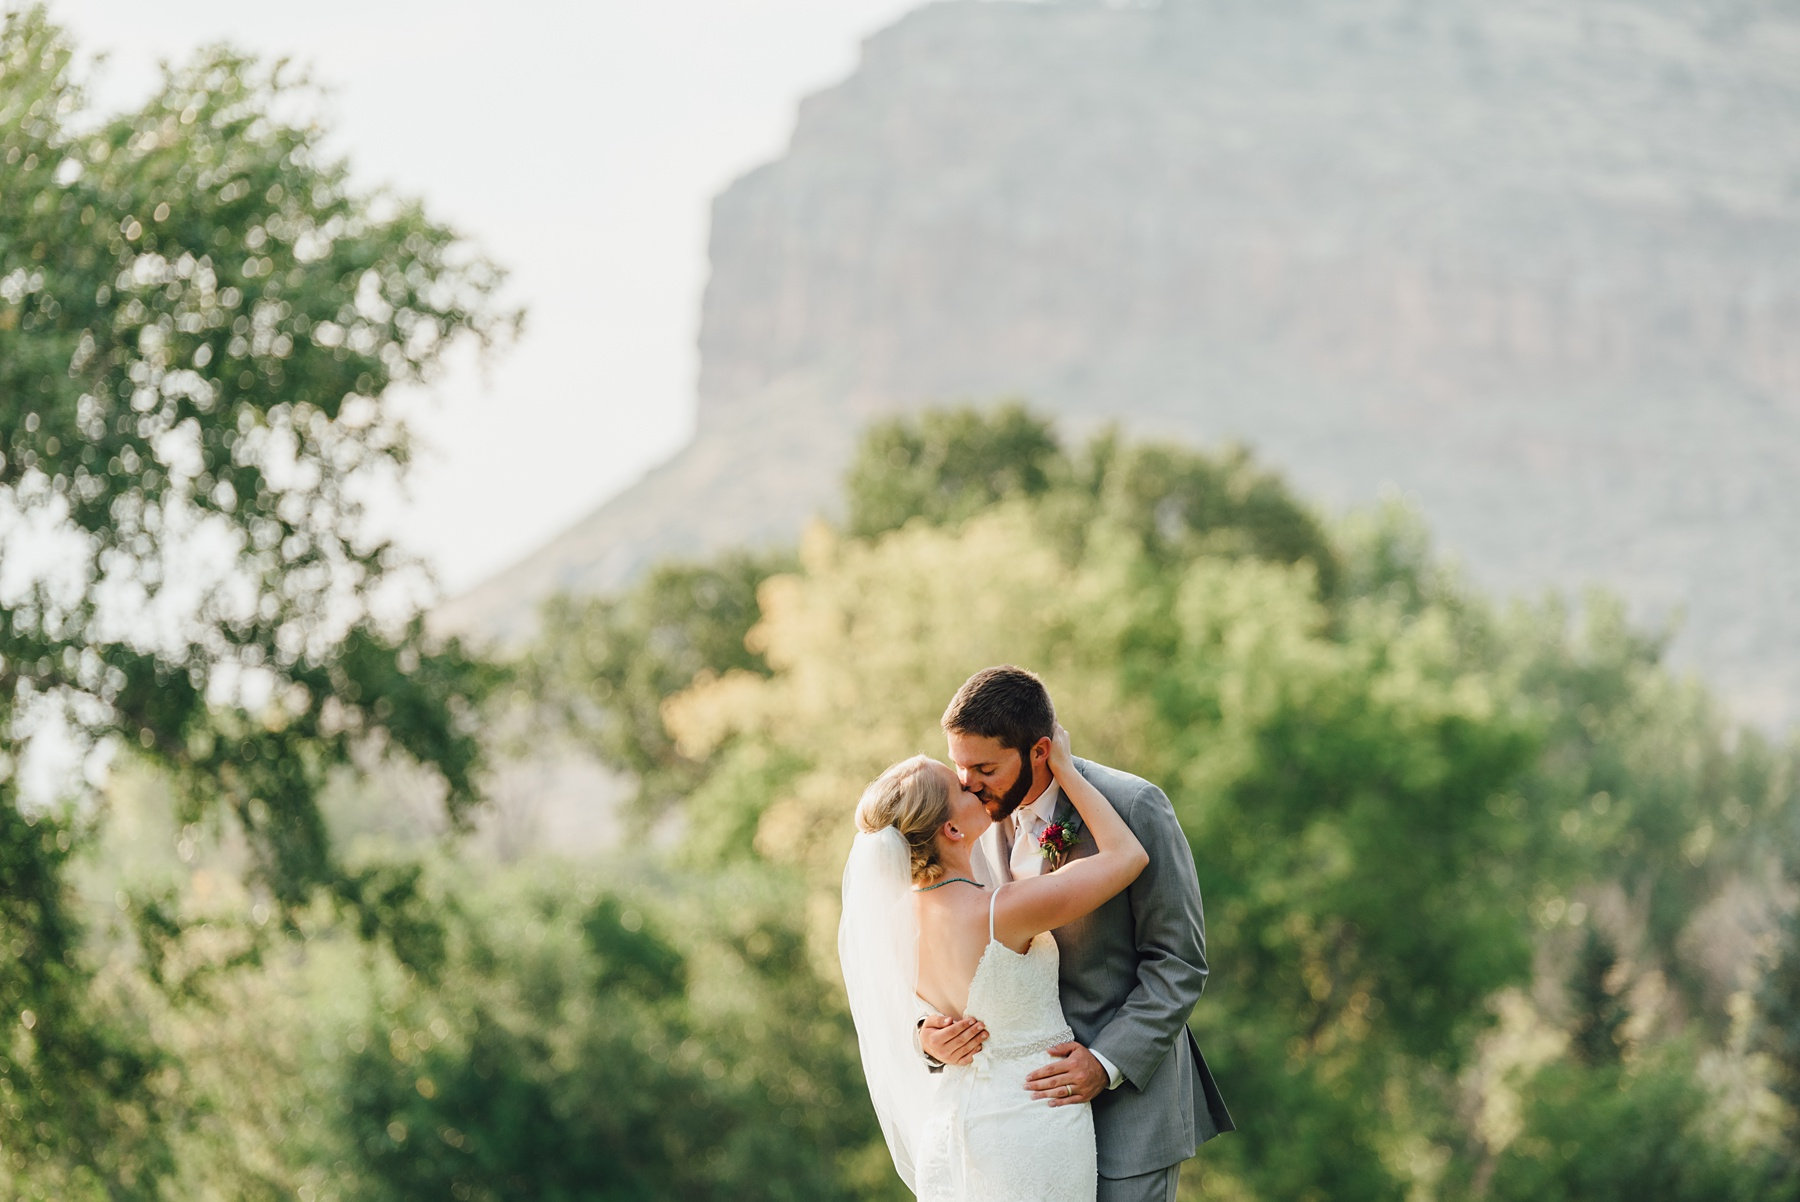 wedding at planet bluegrass in lyons, colorado